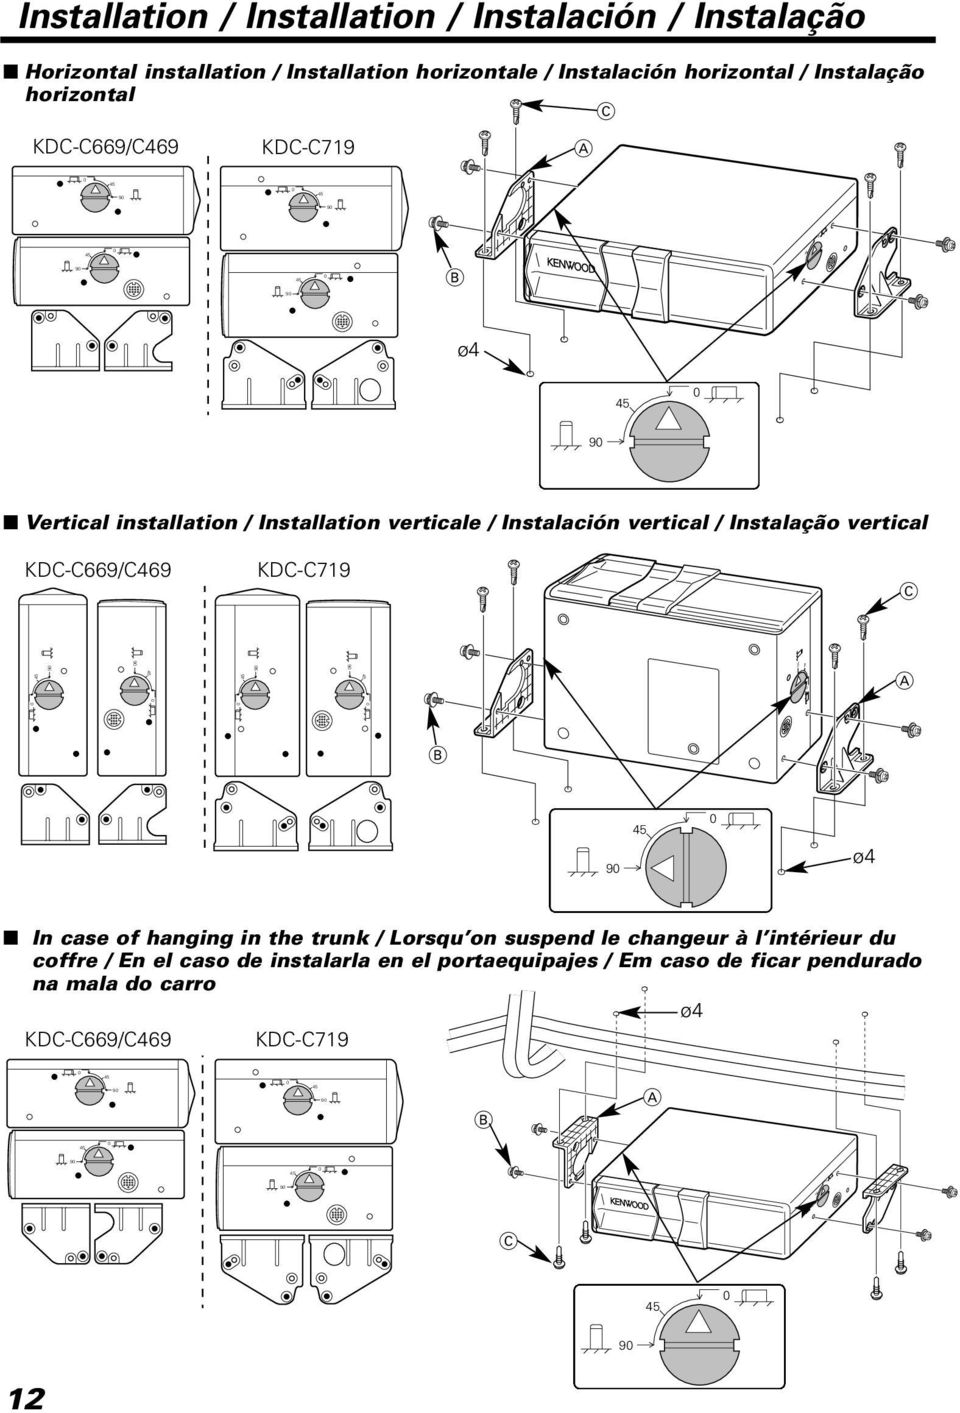 Instalação vertical KDC-C669/C469 KDC-C719 C A B ø4 In case of hanging in the trunk / Lorsqu on suspend le changeur à l intérieur